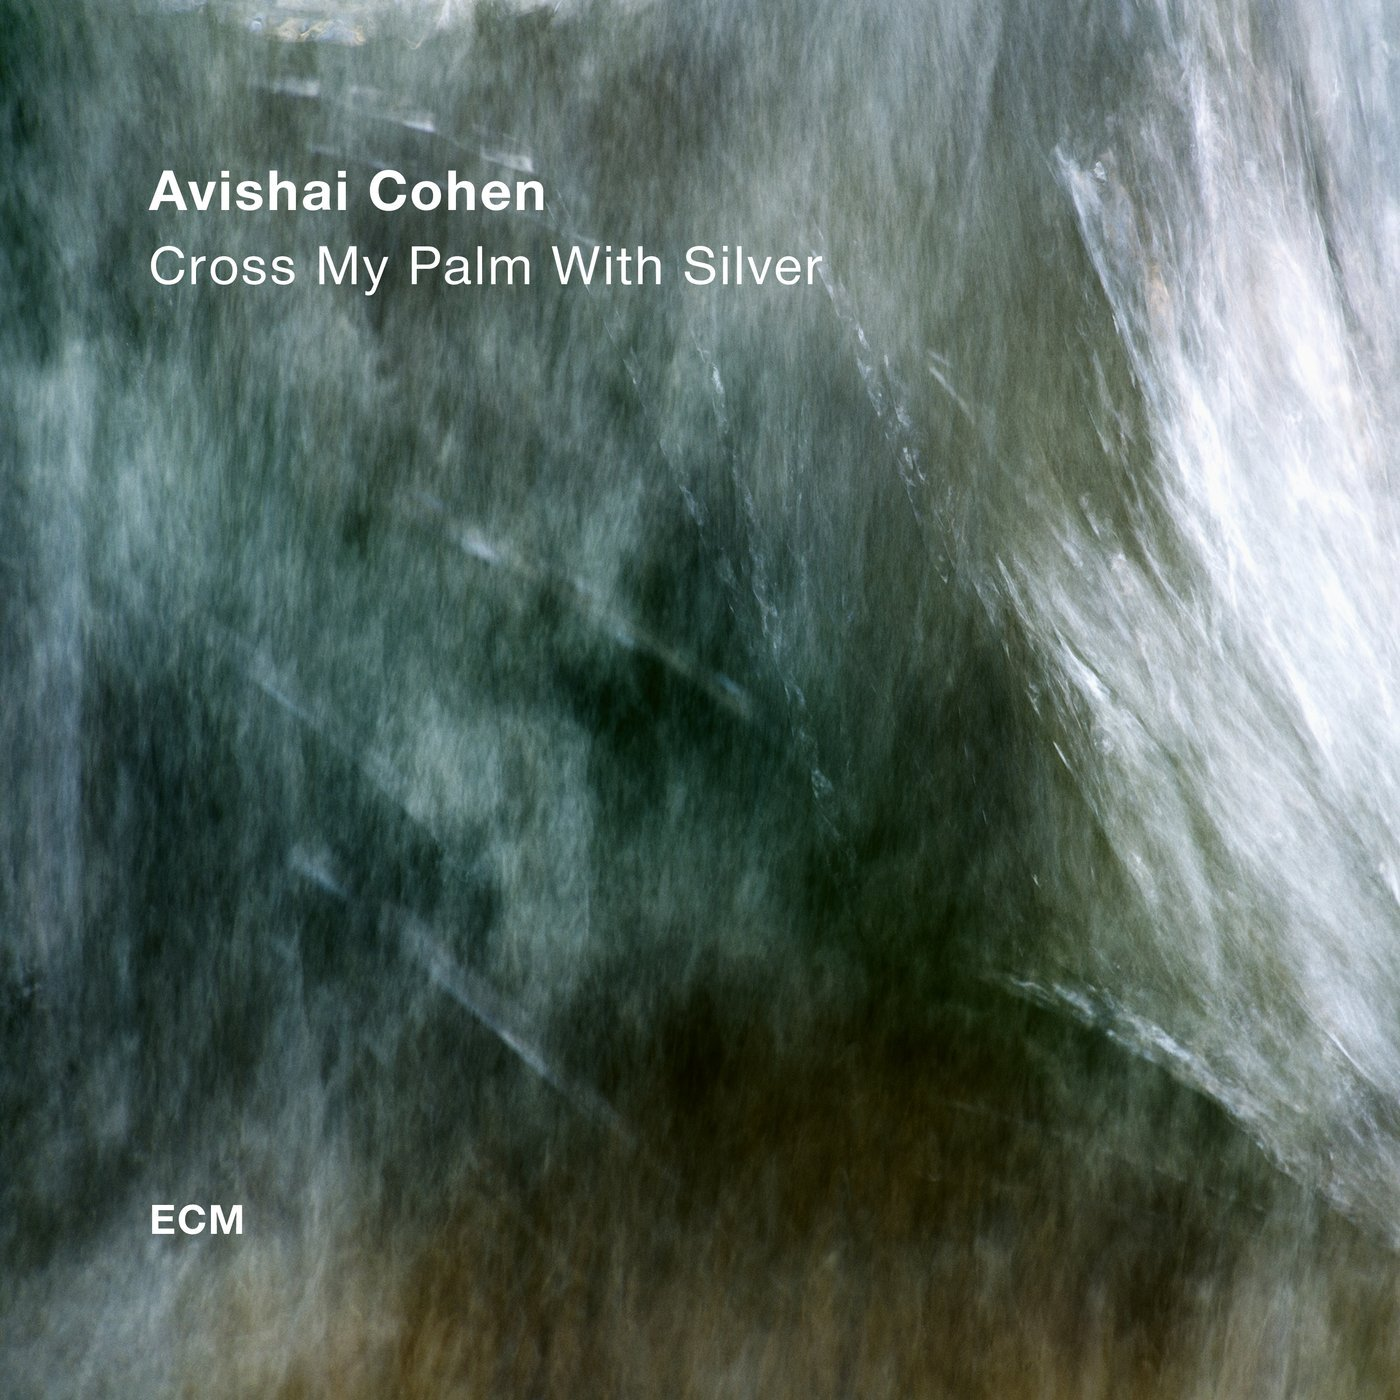 REVIEW: Avishai Cohen - Cross My Palm With Silver